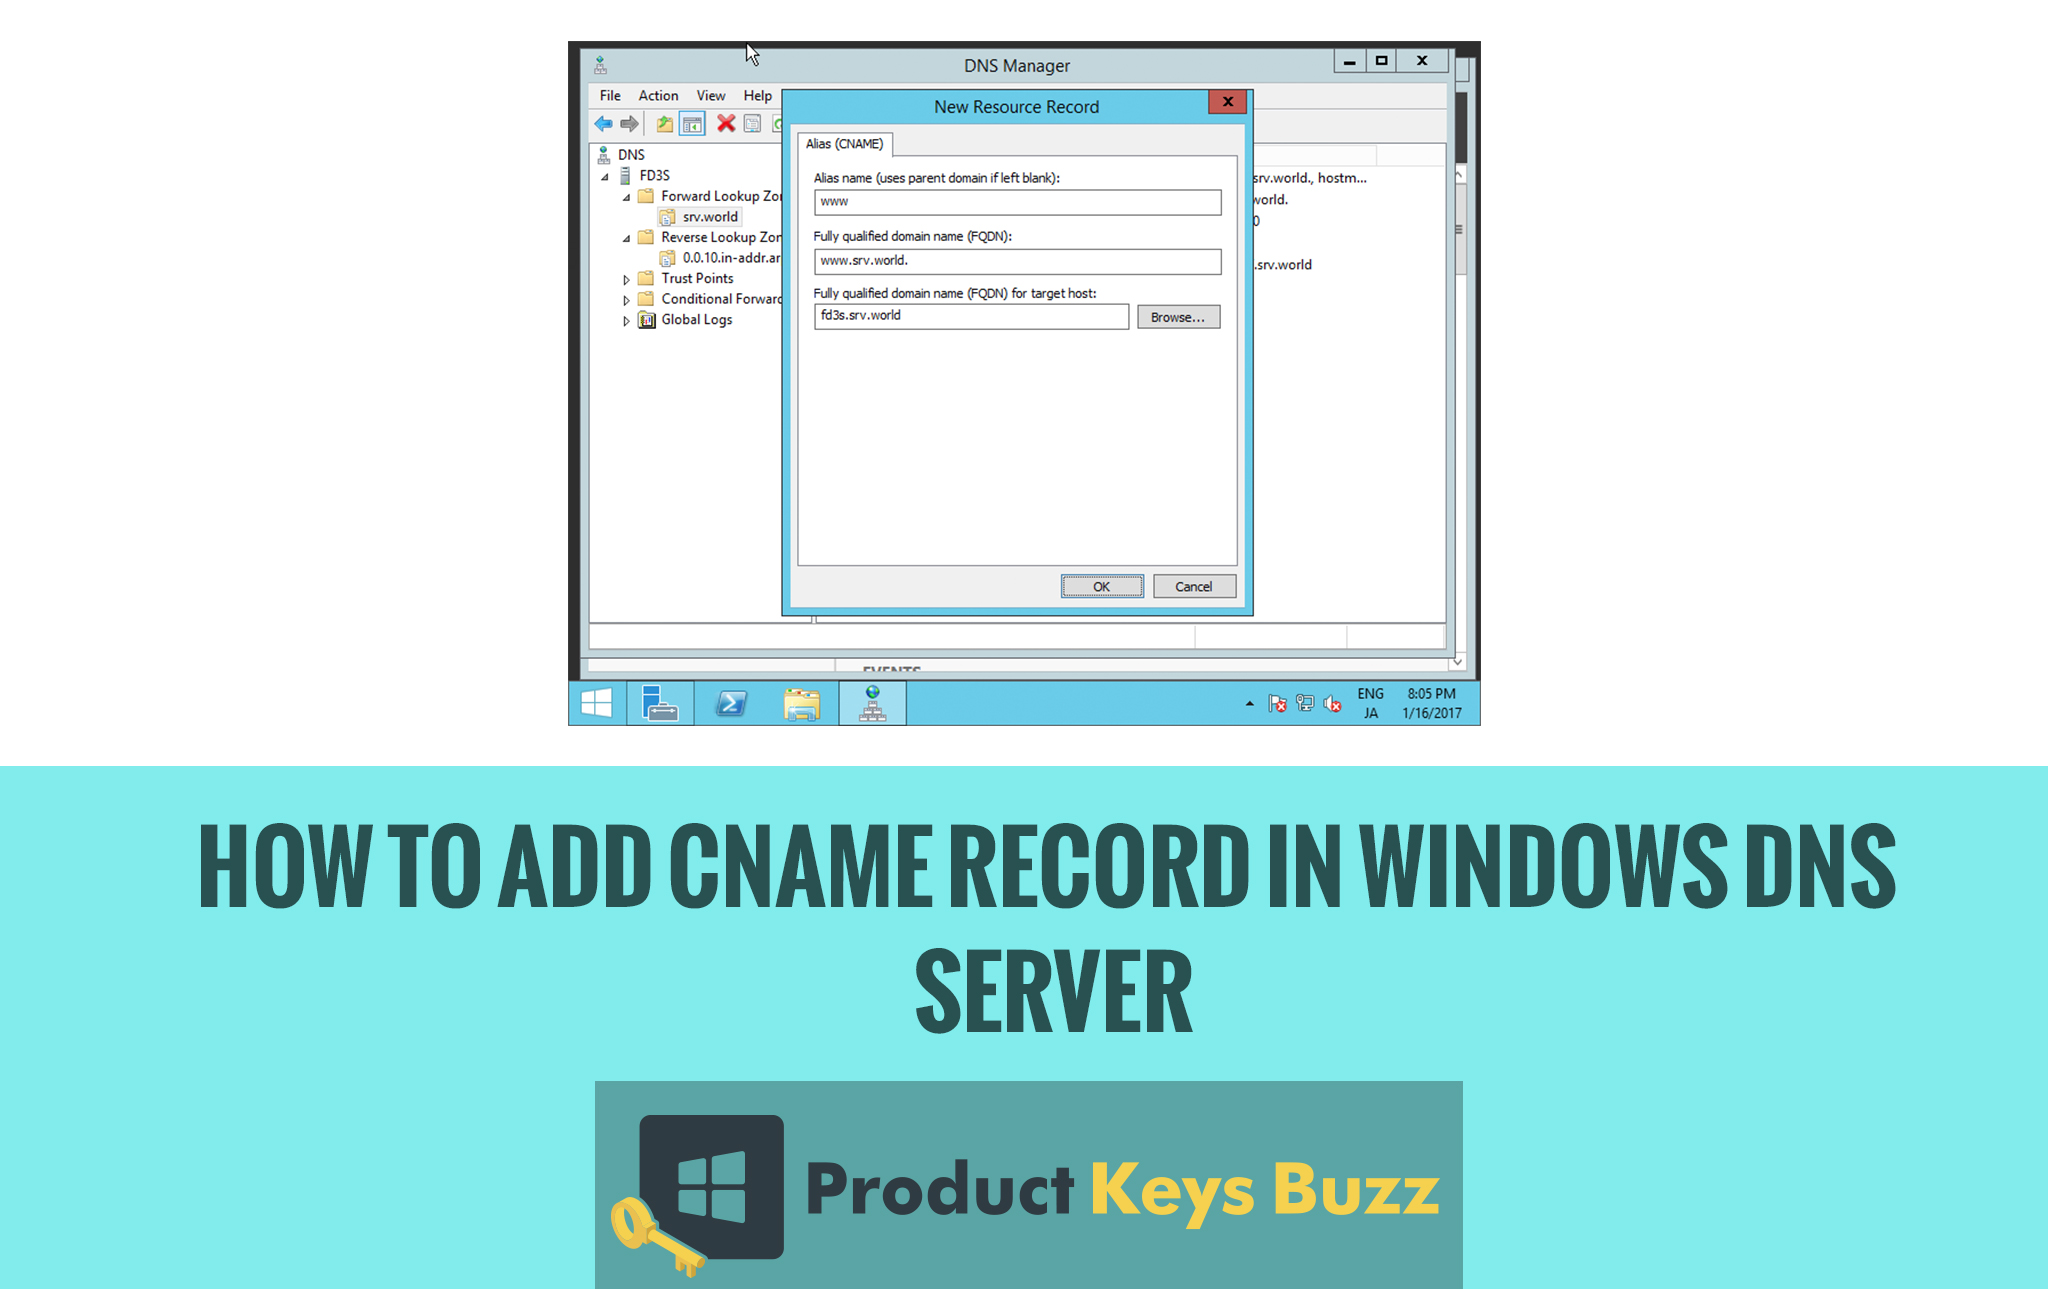 How to Add CNAME Record in Windows DNS Server